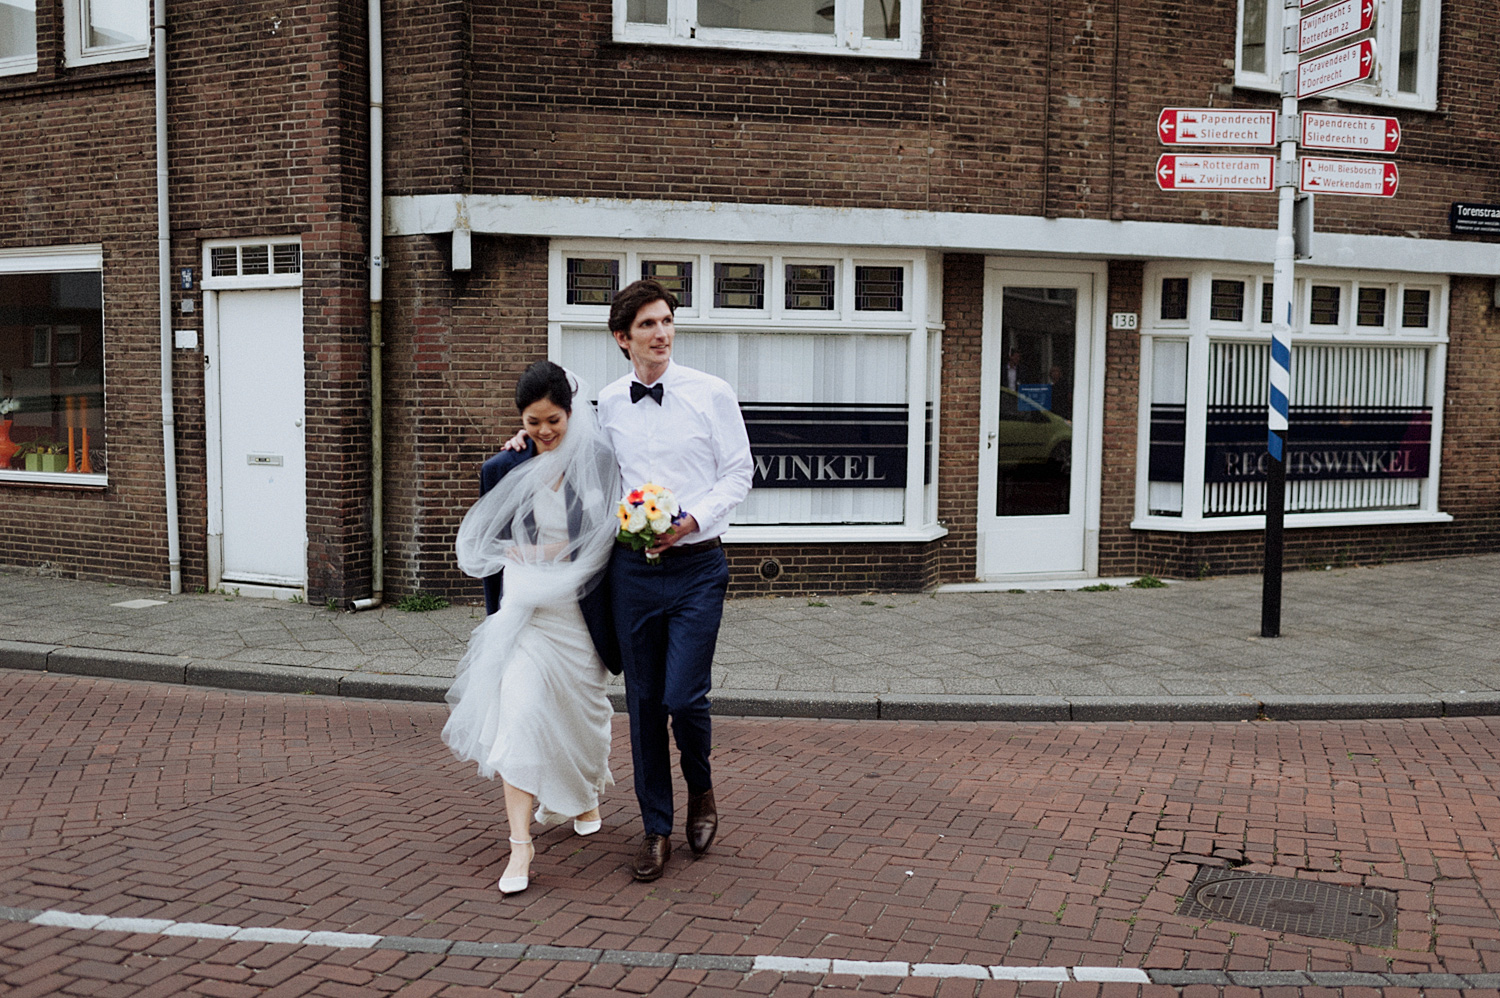 246-sjoerdbooijphotography-wedding-nard-joming.jpg